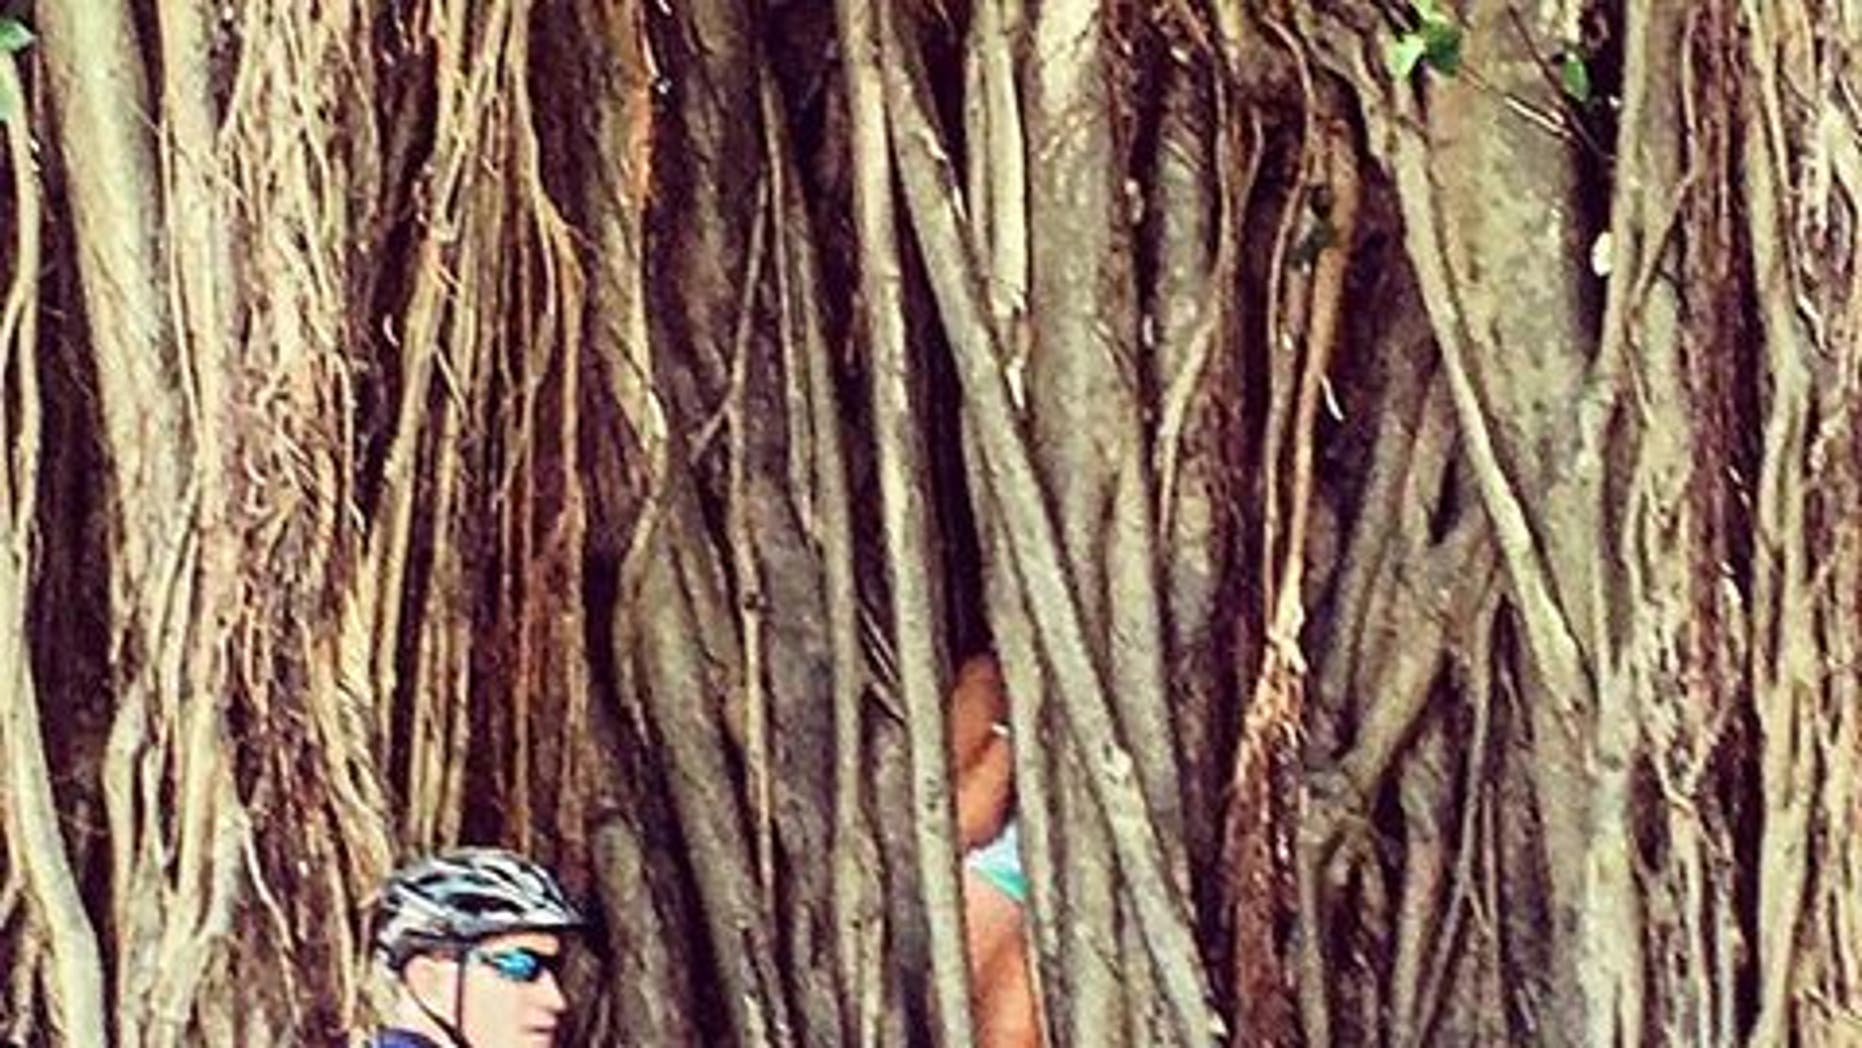 A woman became stuck inside a banyan tree.